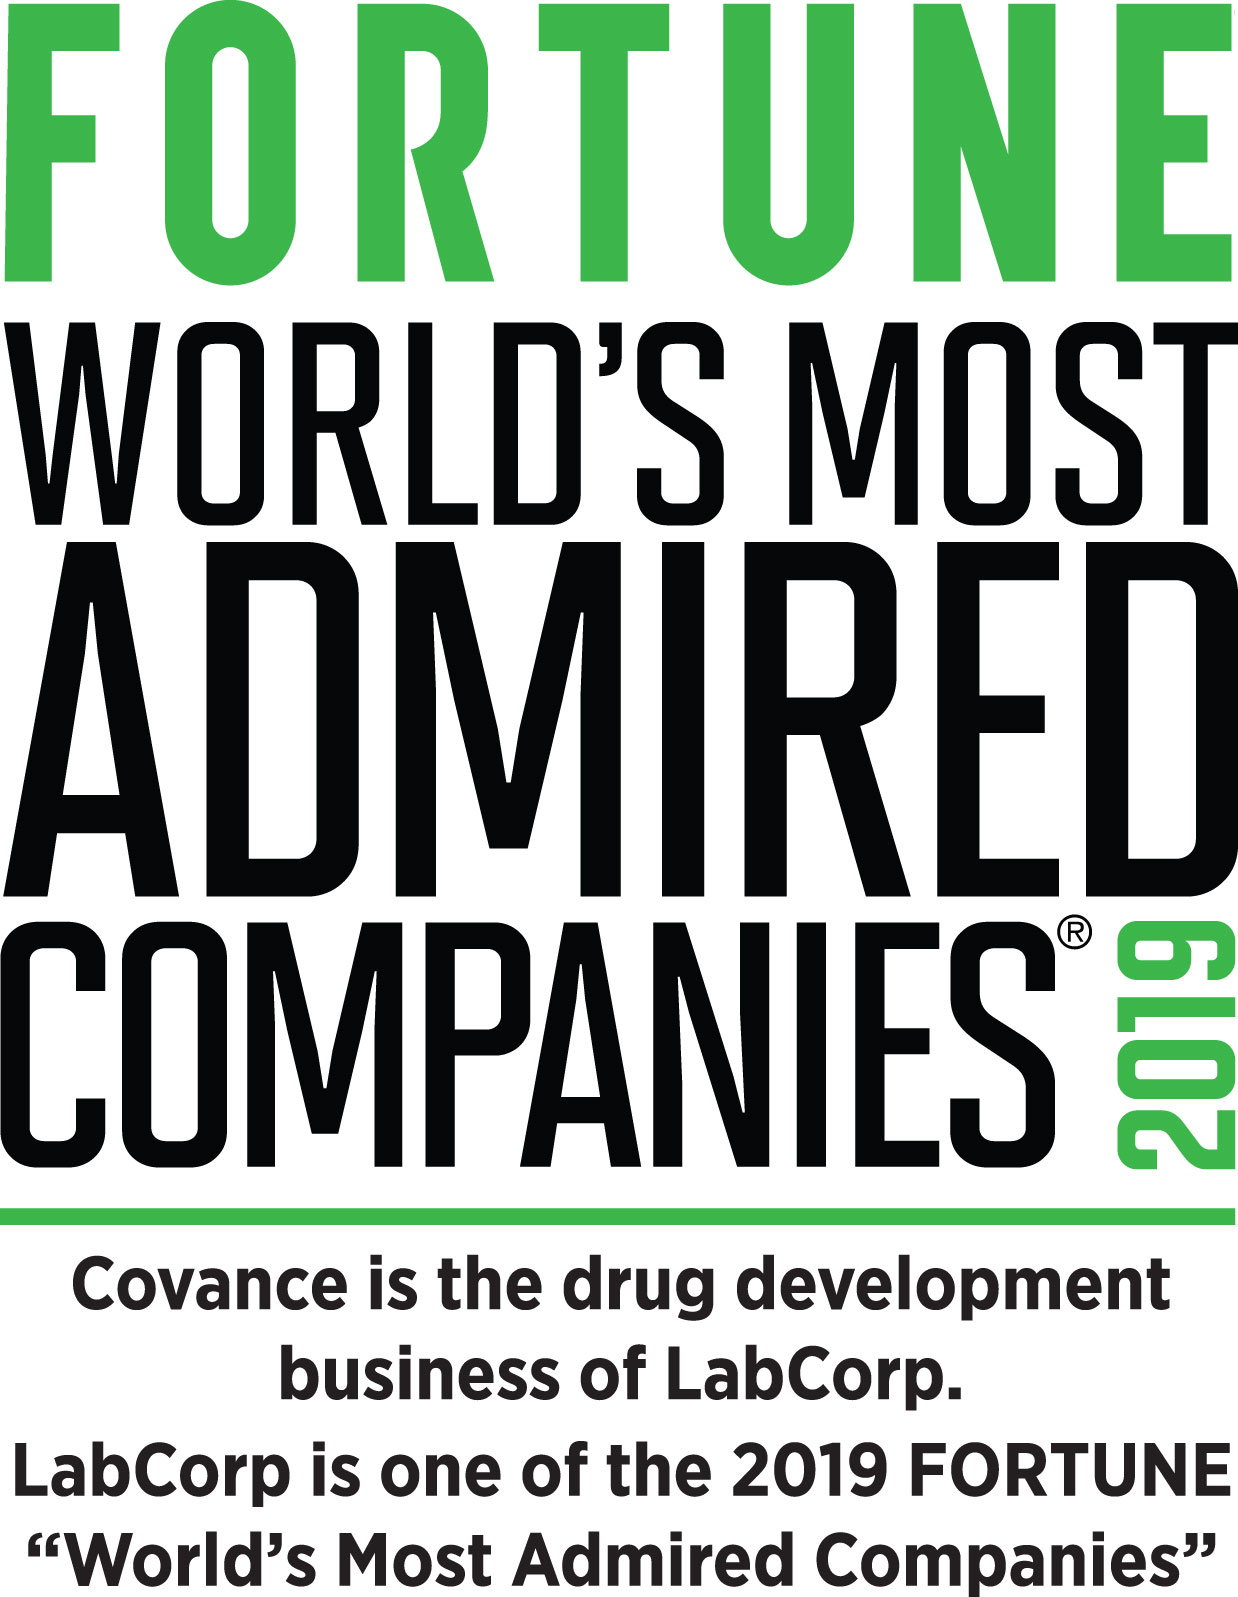 World's Most Admired Companies